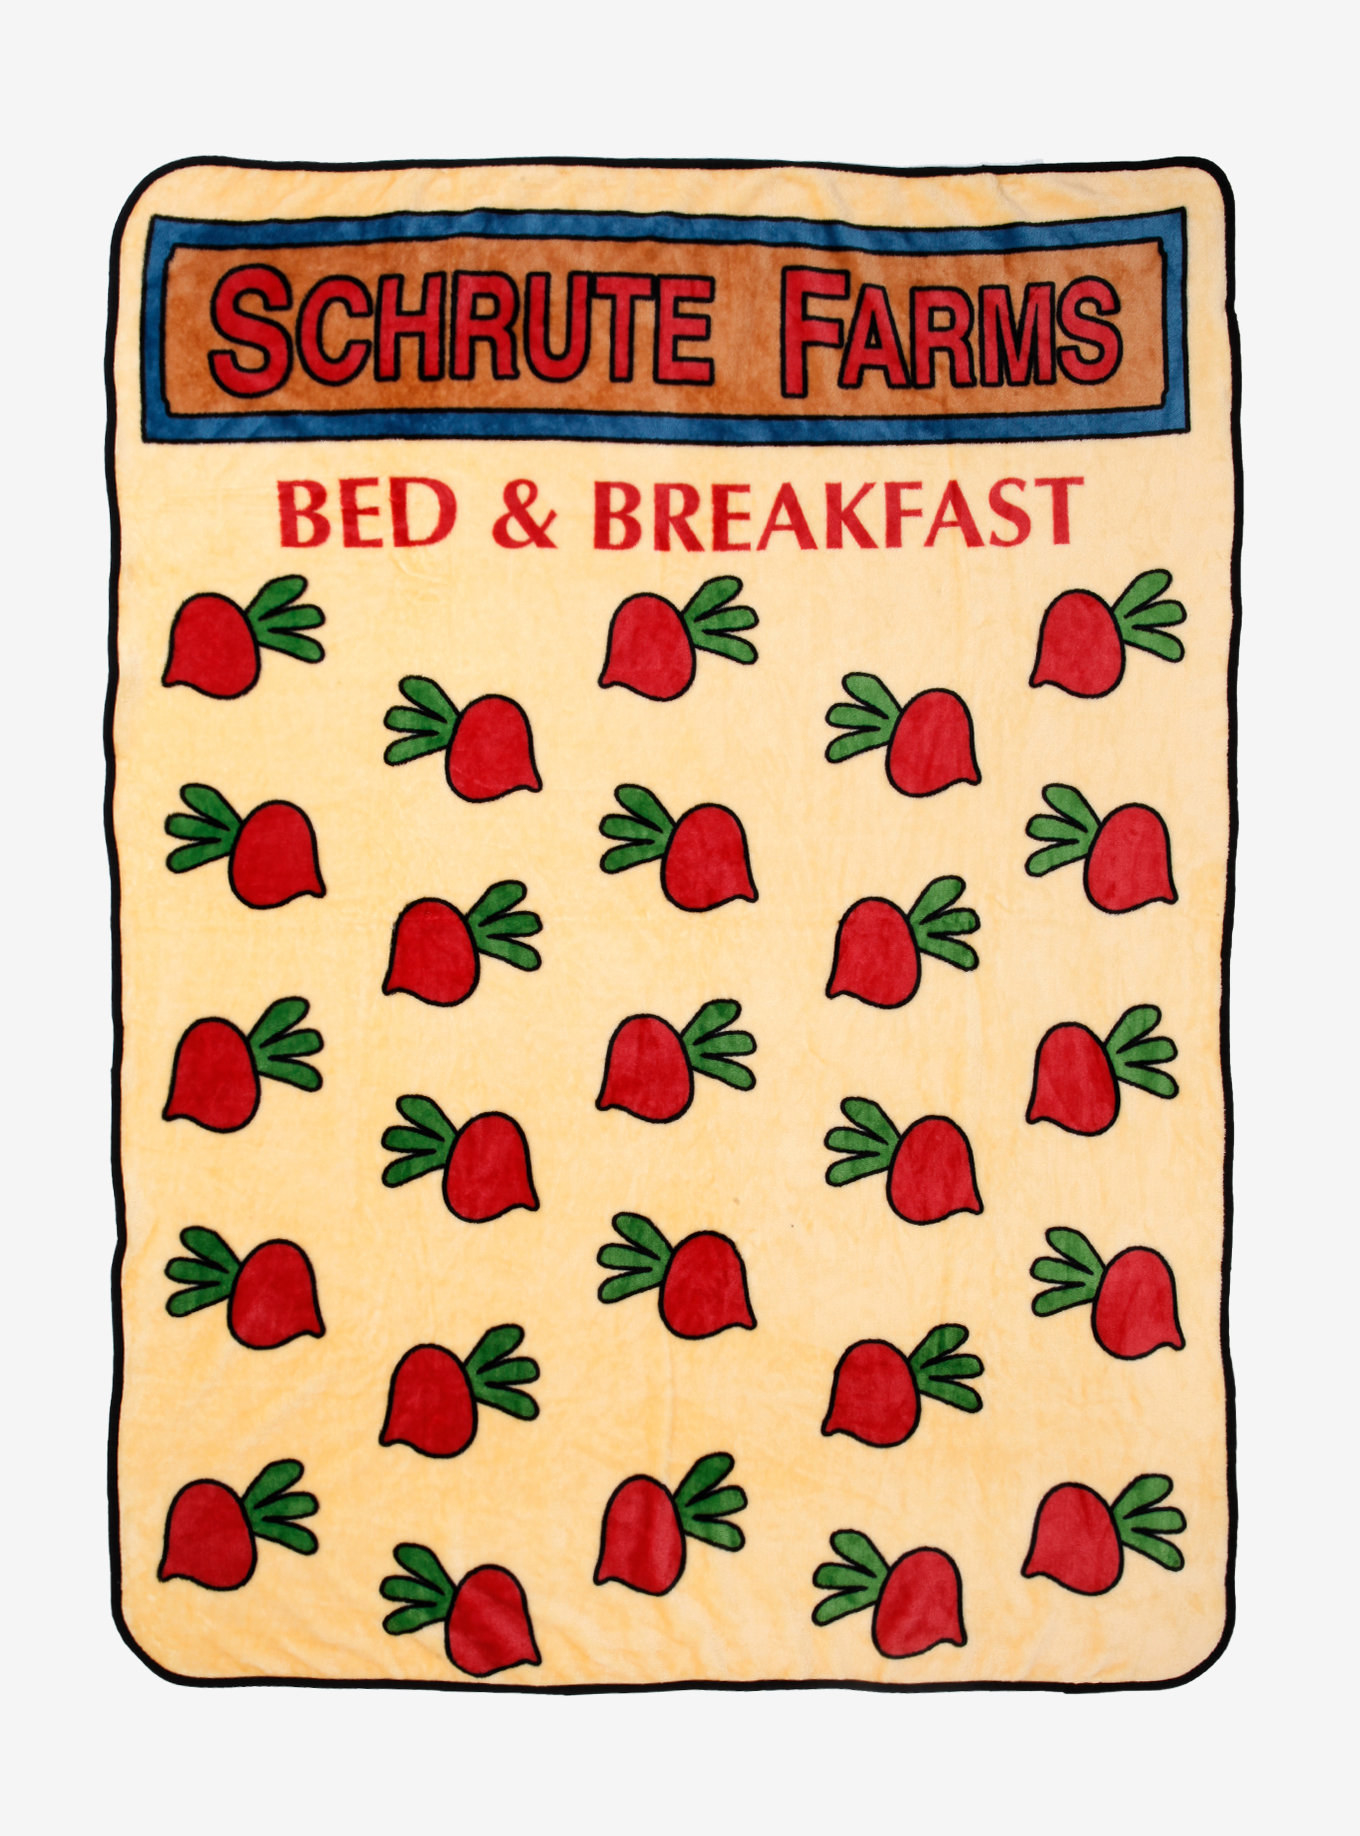 """the blanket with radish illustrations and text saying """"Schrute Farms Bed and Breakfast"""""""